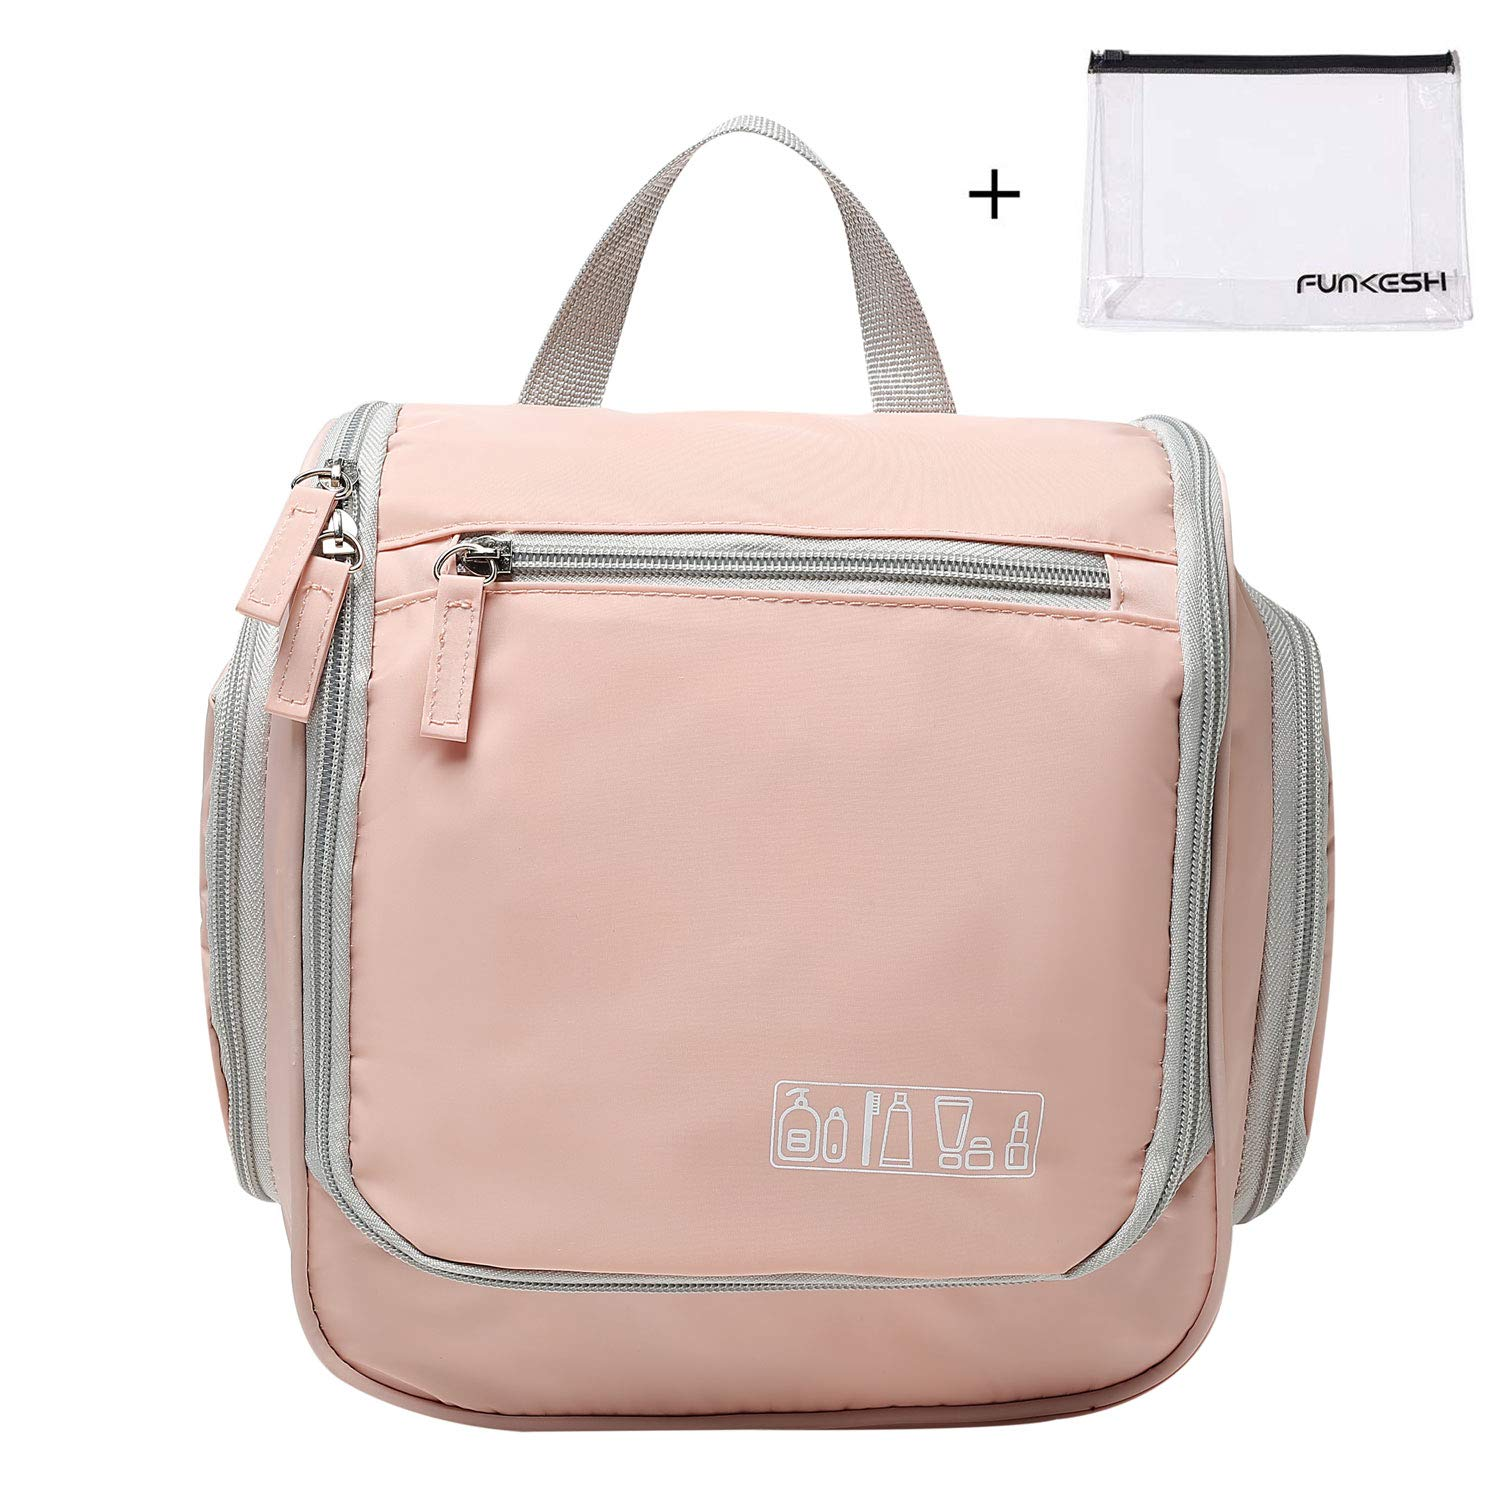 Hanging Travel Toiletry Bag for Men and Women, Travel Organizer for Toiletries, Travel Accessory and Makeup with Metal Hook Pink